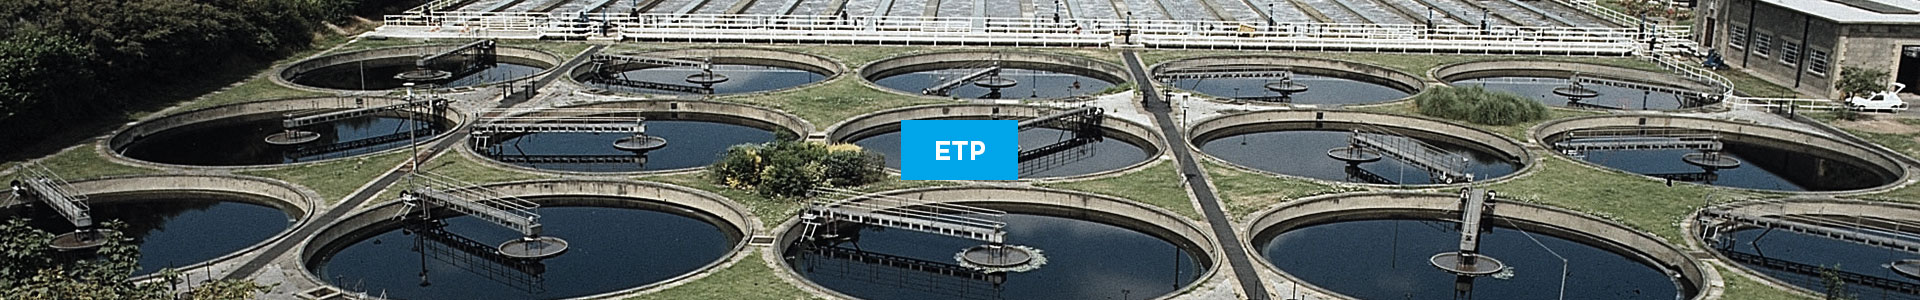 Effluent Treatment Plant (ETP)